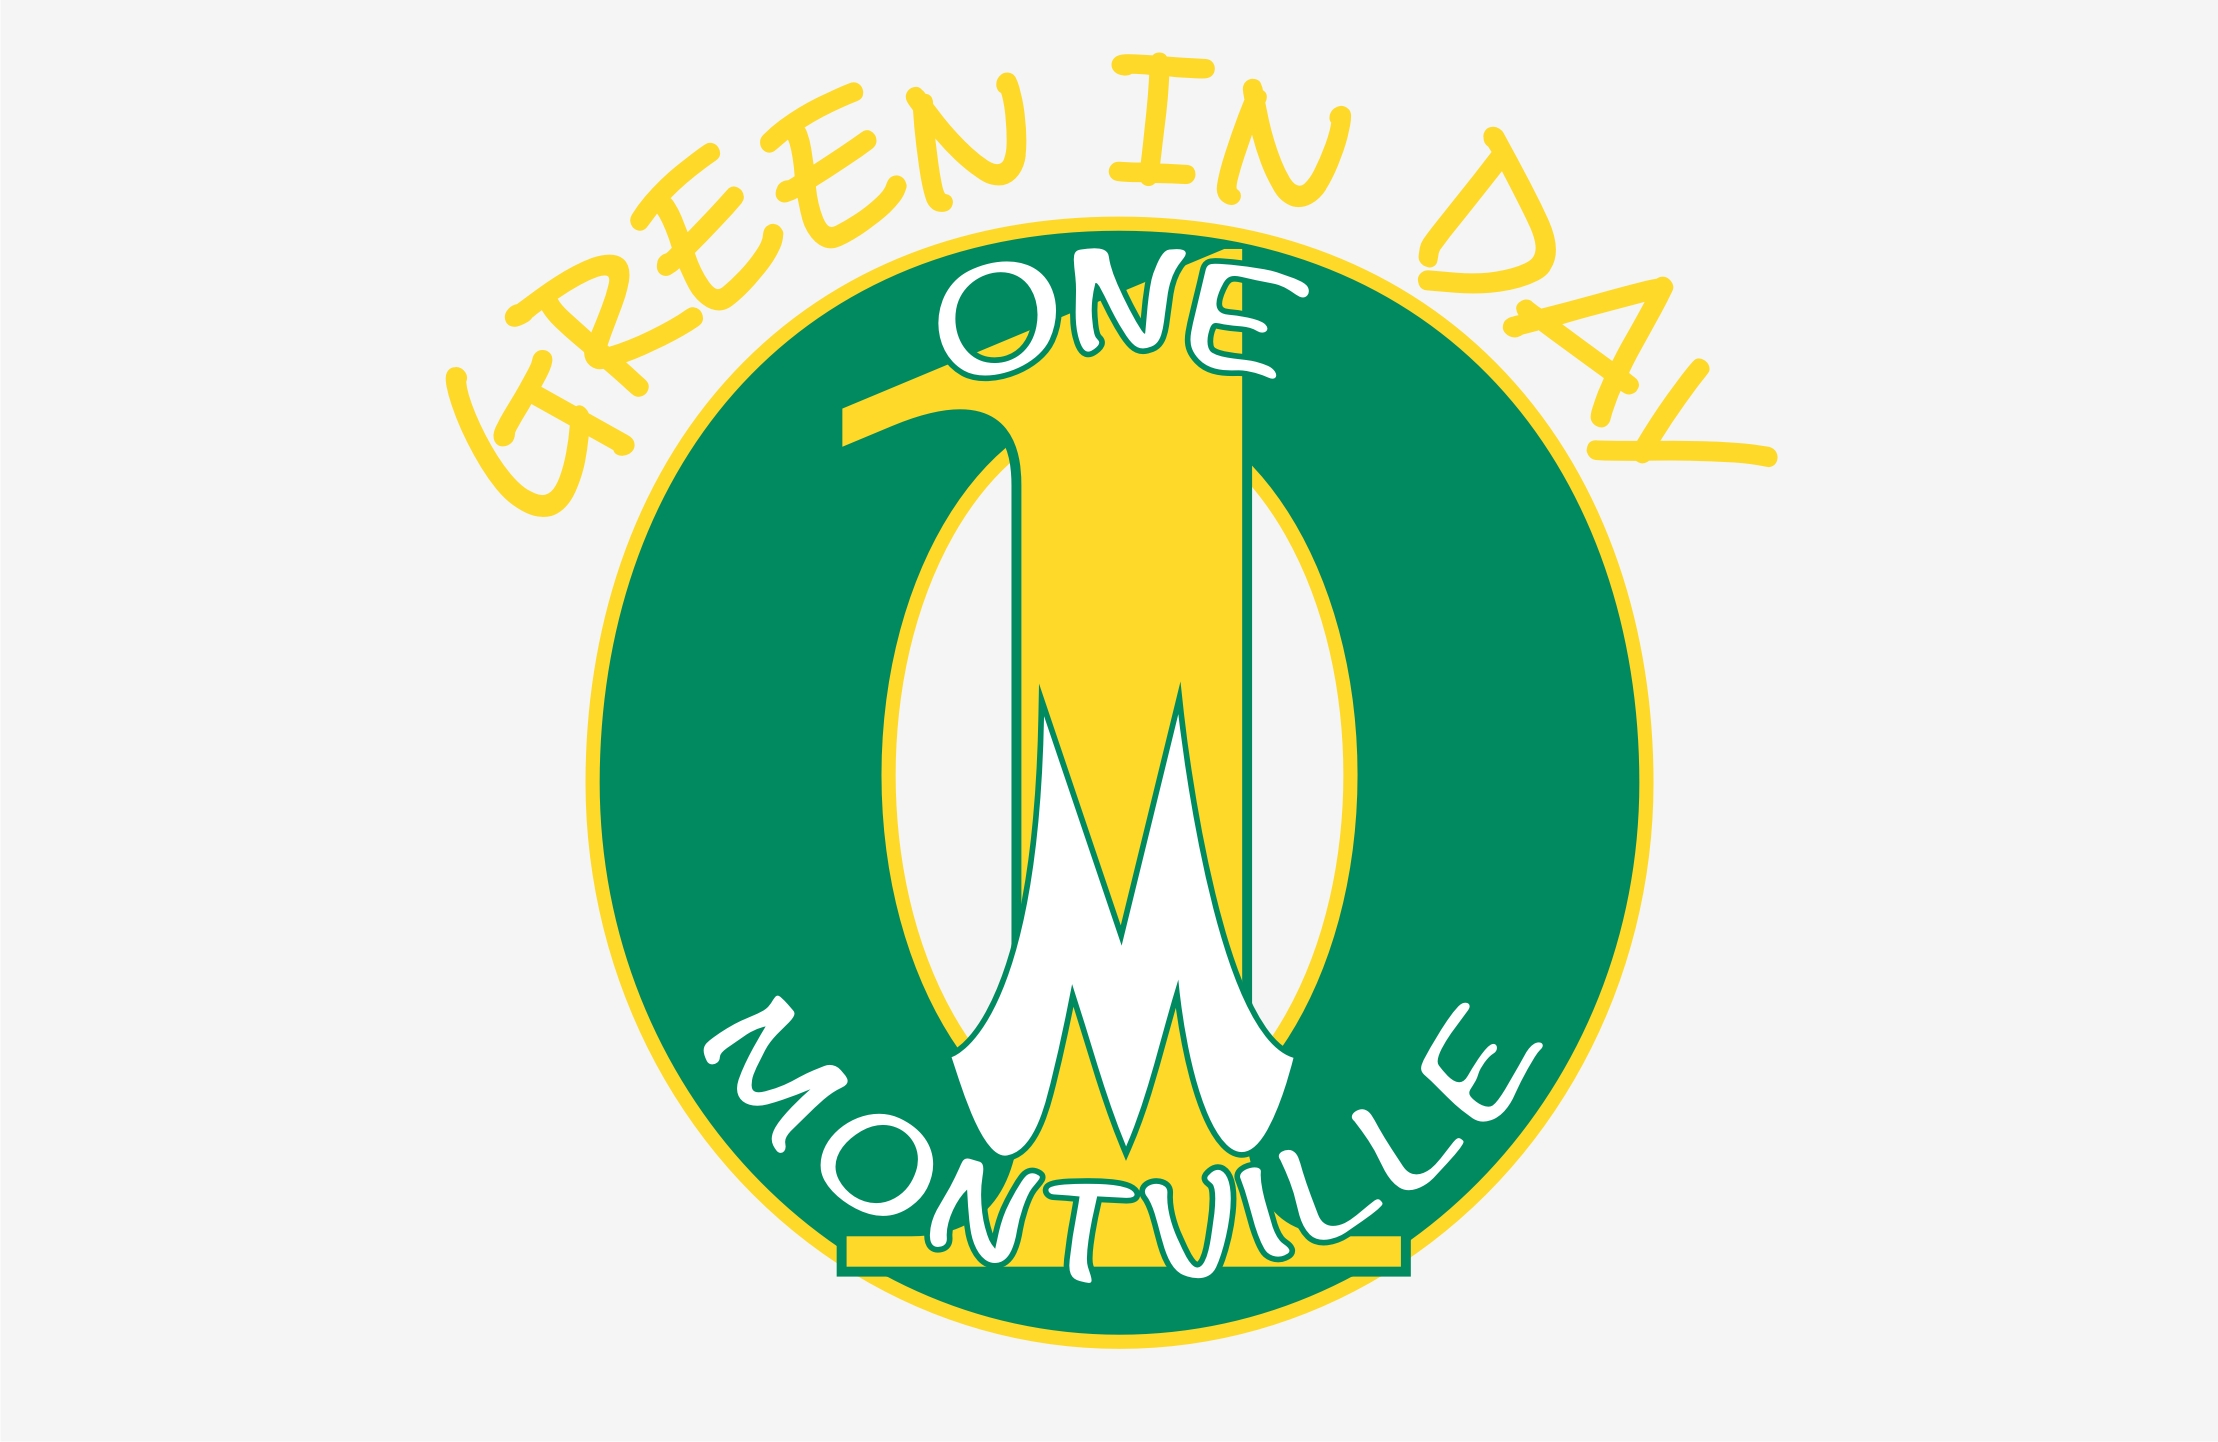 Montville Green-In Day